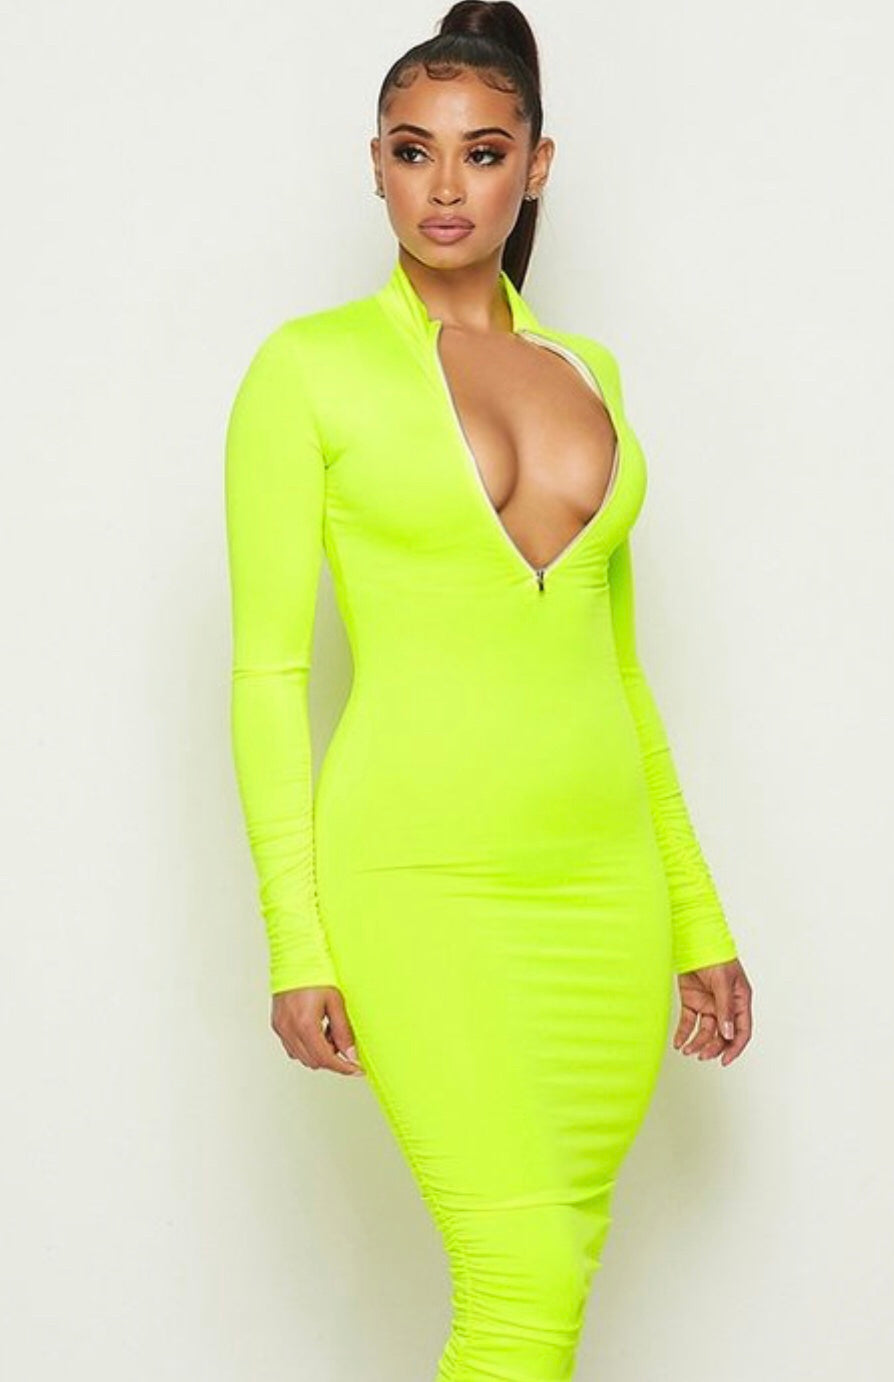 Neon Zip Up Dress